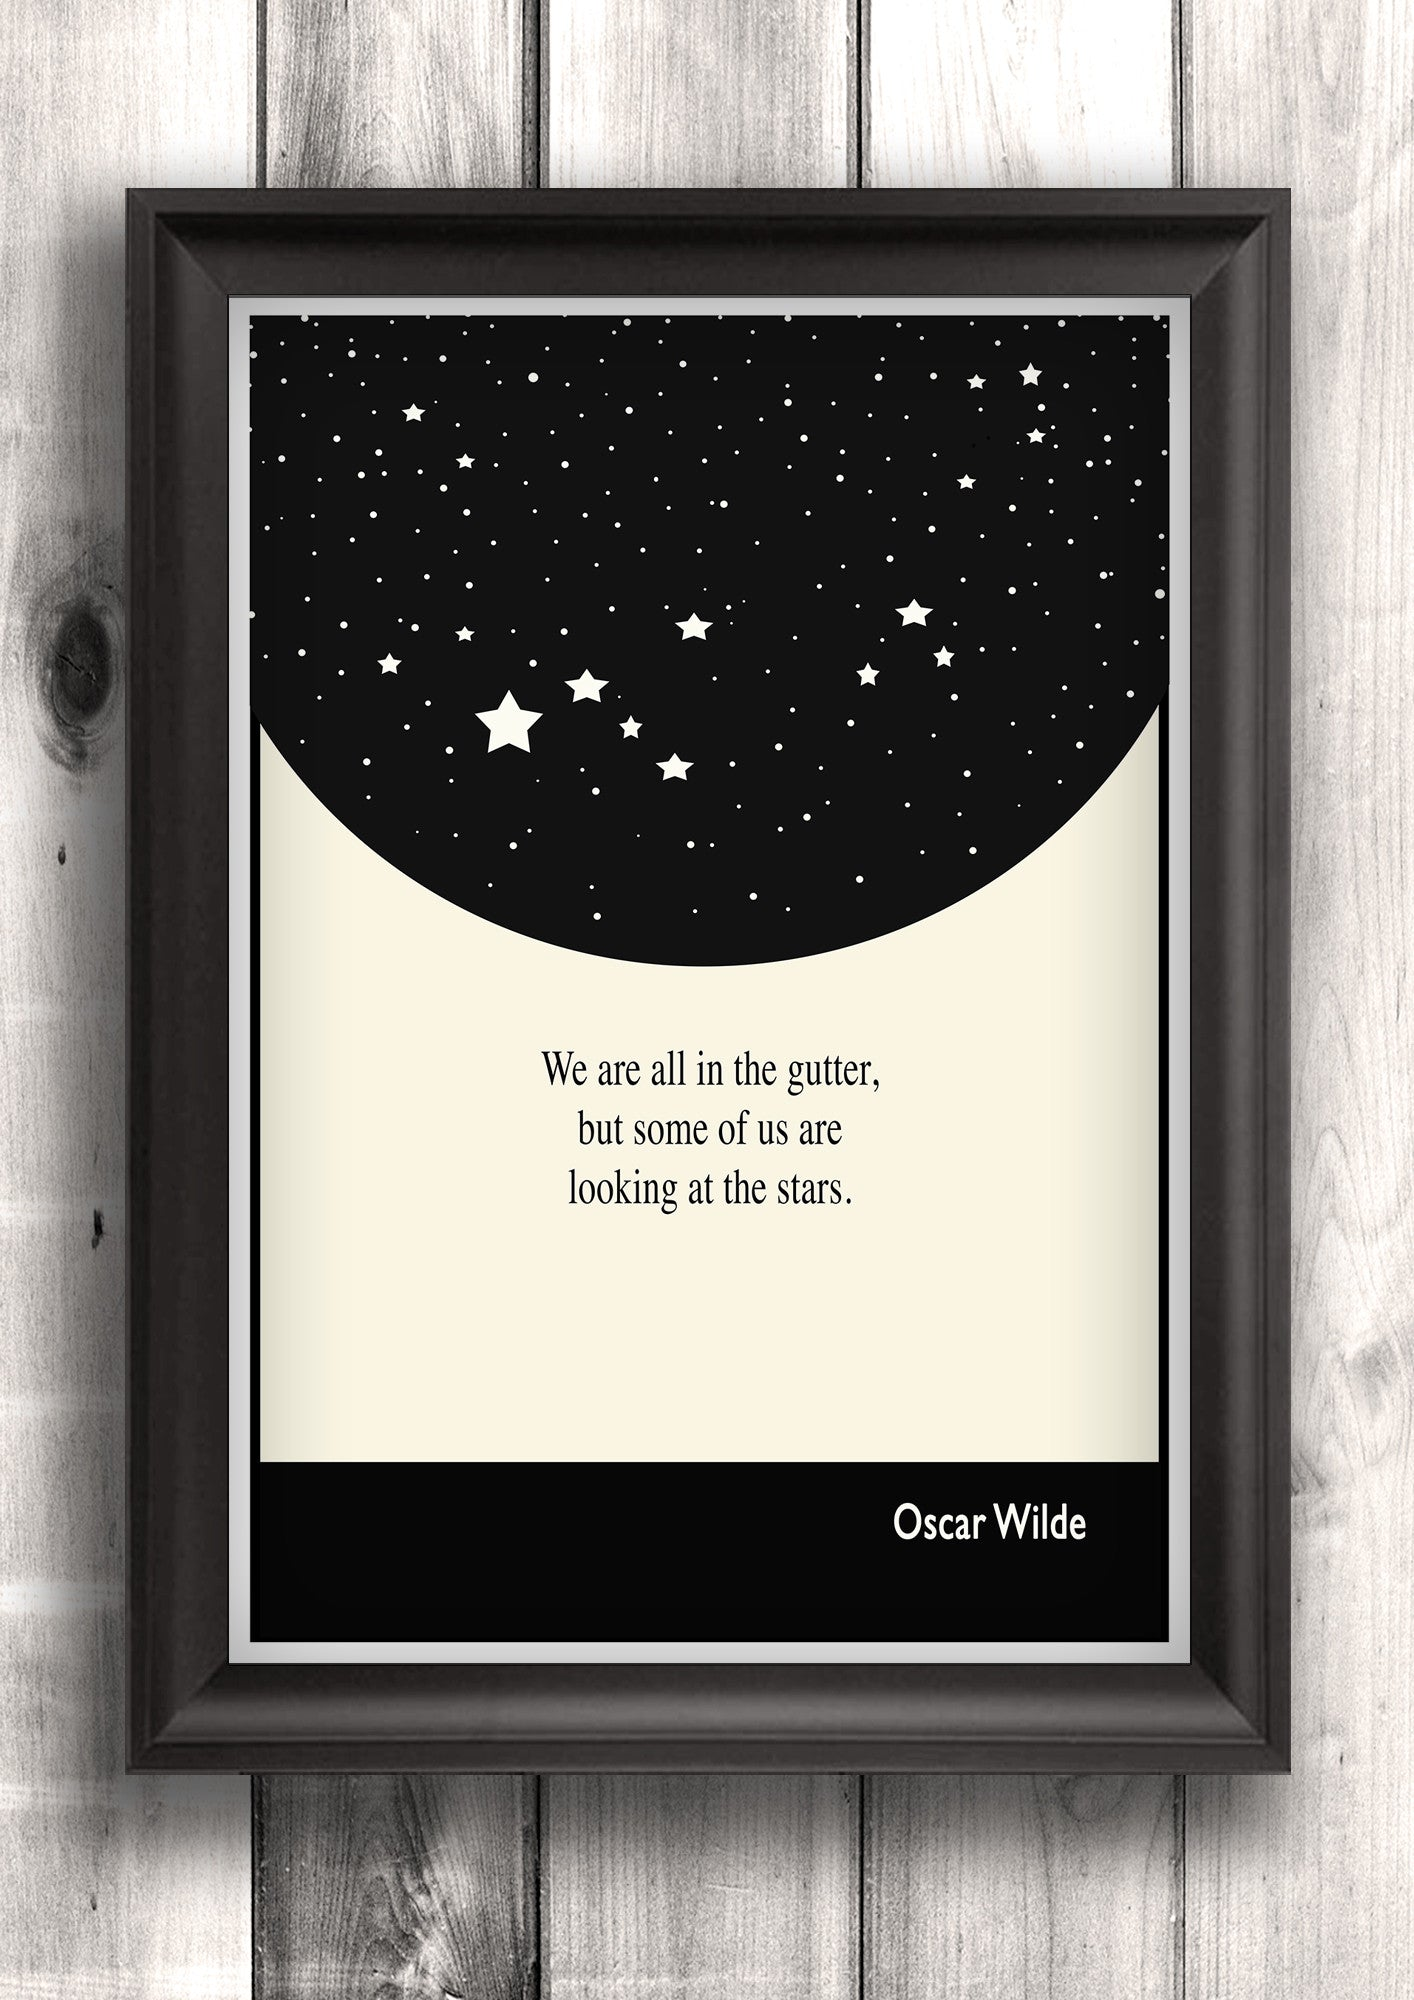 Literary Art - Oscar Wilde Quote, Art Poster, Minimalist Black and White - Fine art letterpress poster